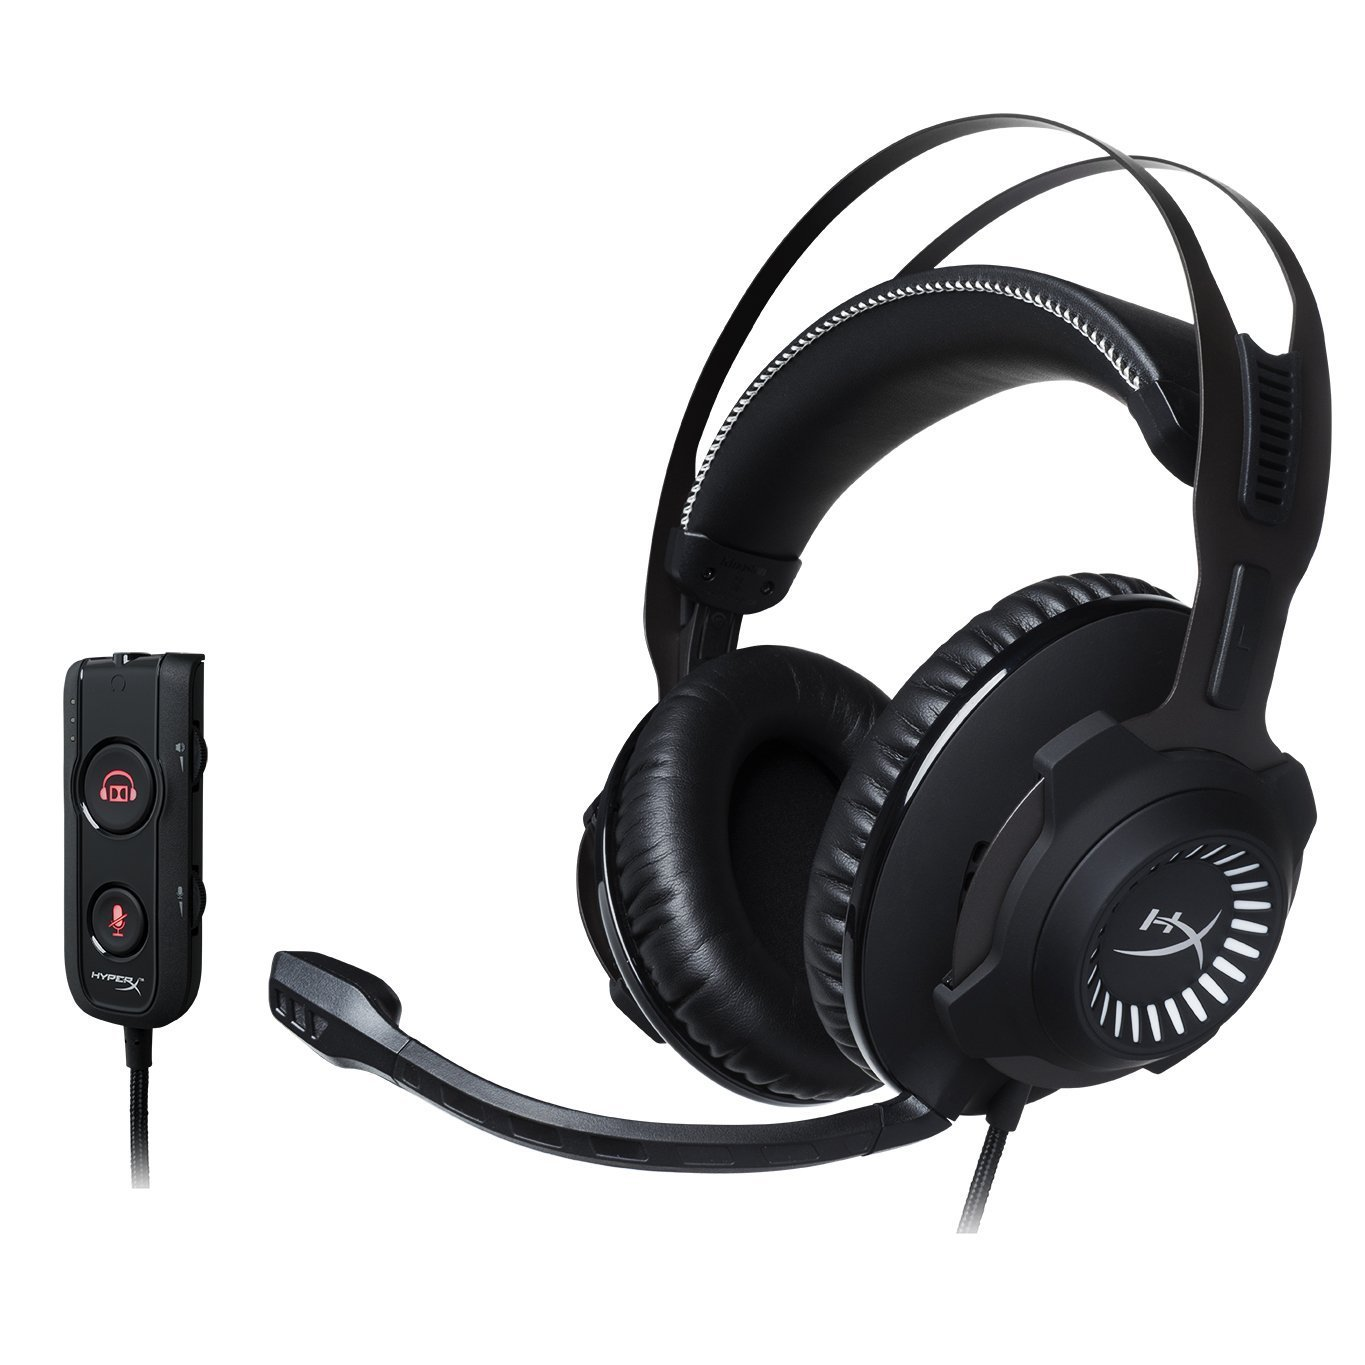 HyperX Cloud Revolver S Gaming Headset with Dolby 7.1 Surround Sound for PC, PS4, PS4 PRO, Xbox One¹, Xbox One S¹ (HX-HSCRS-GM/NA) by HyperX